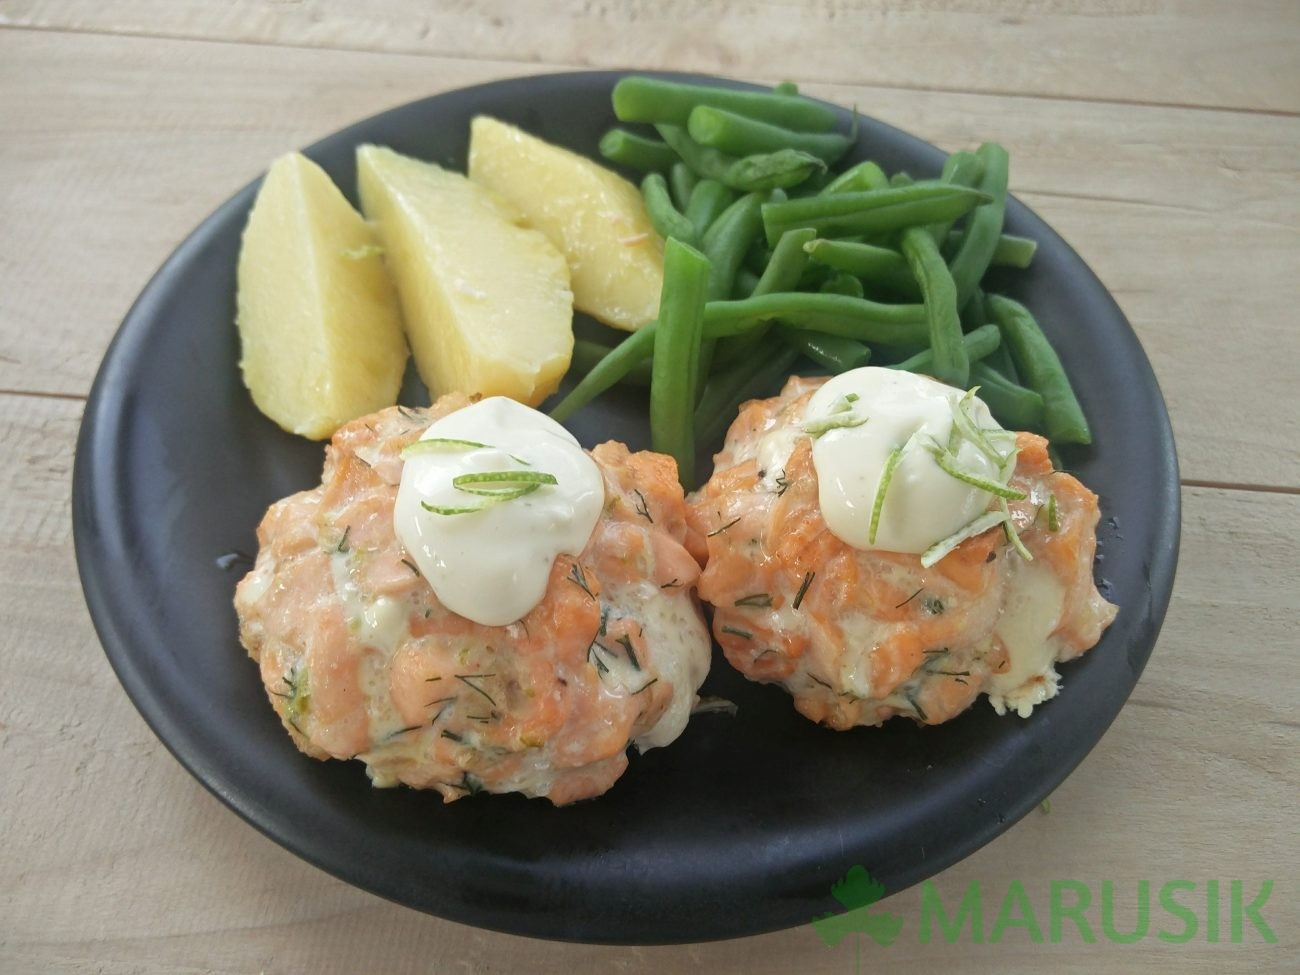 Salmon cakes with herb mayonnaise